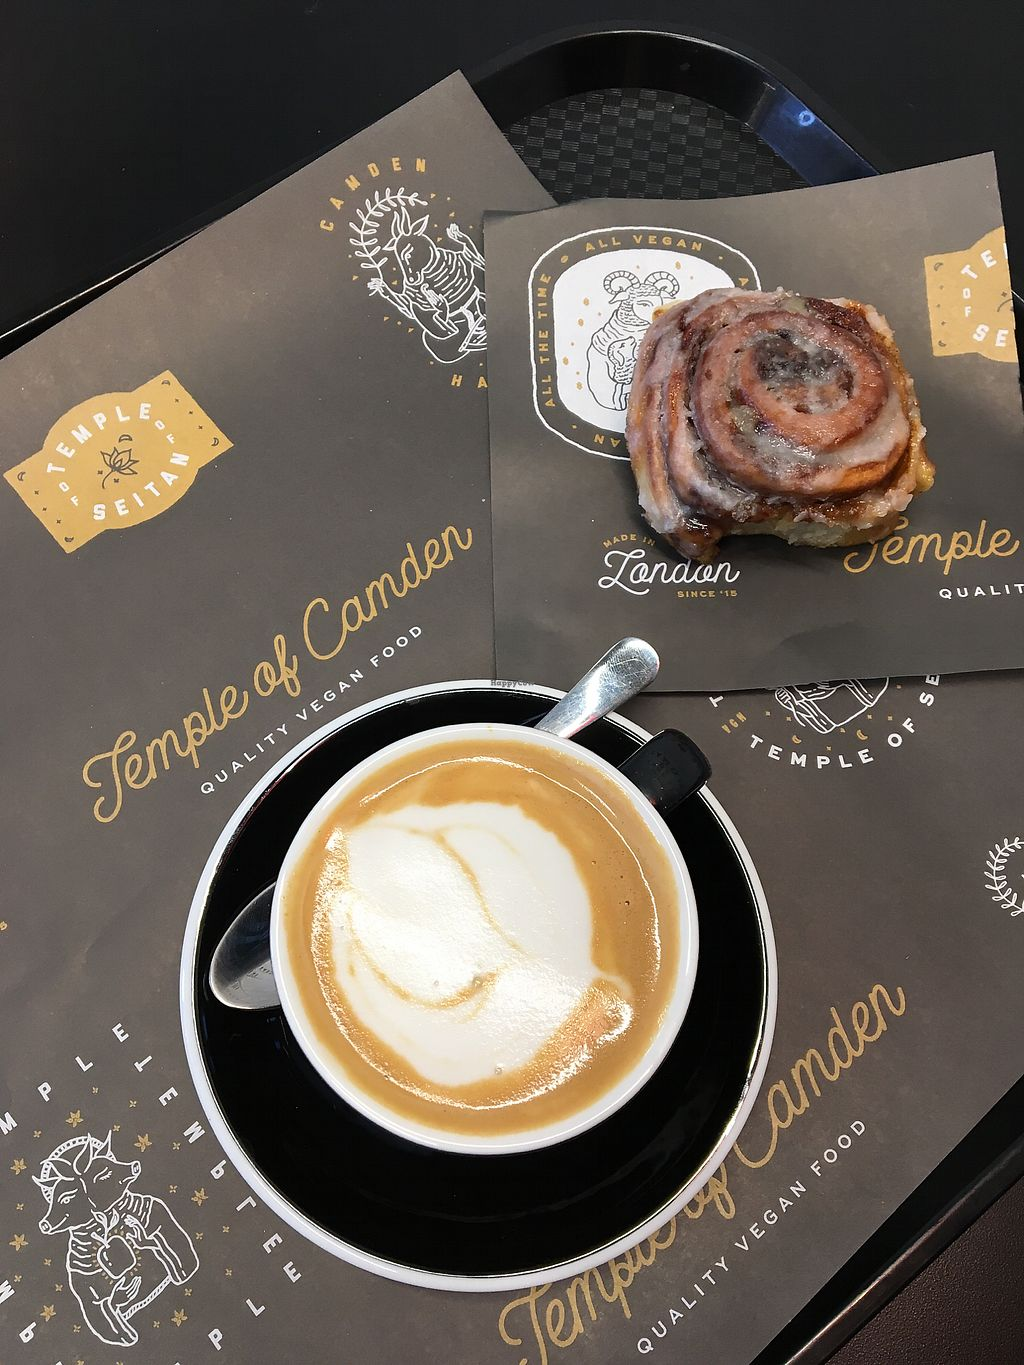 """Photo of Temple of Camden  by <a href=""""/members/profile/eatyourveggies"""">eatyourveggies</a> <br/>Most amazing cinnamon bun and flat white  <br/> March 25, 2018  - <a href='/contact/abuse/image/111116/375848'>Report</a>"""